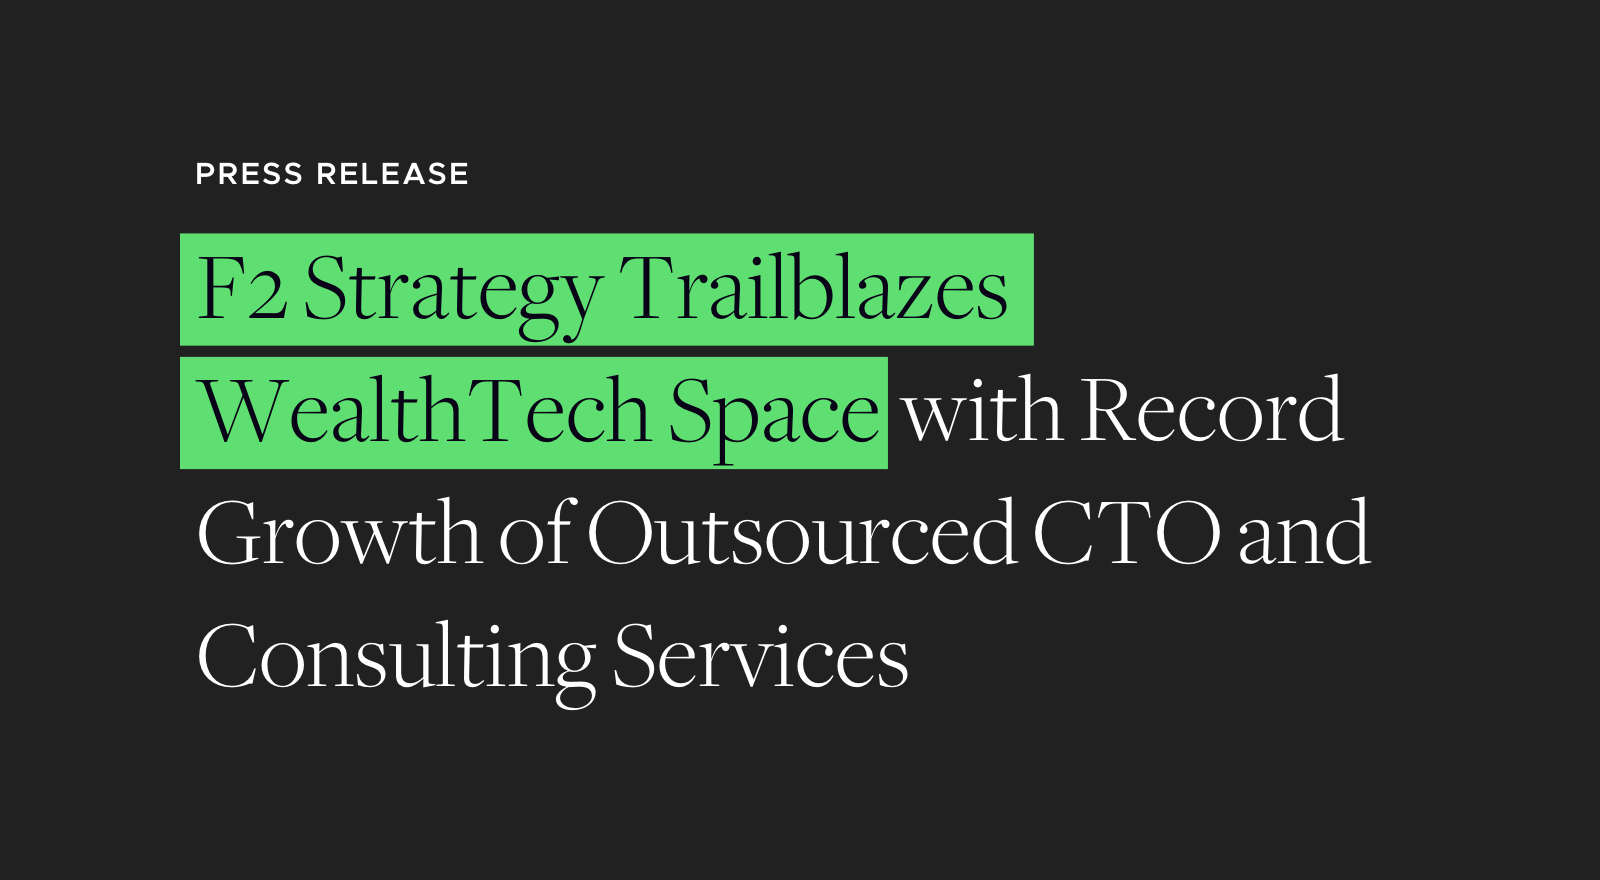 F2 Strategy Trailblazes WealthTech Space with Record Growth of Outsourced CTO and Consulting Services